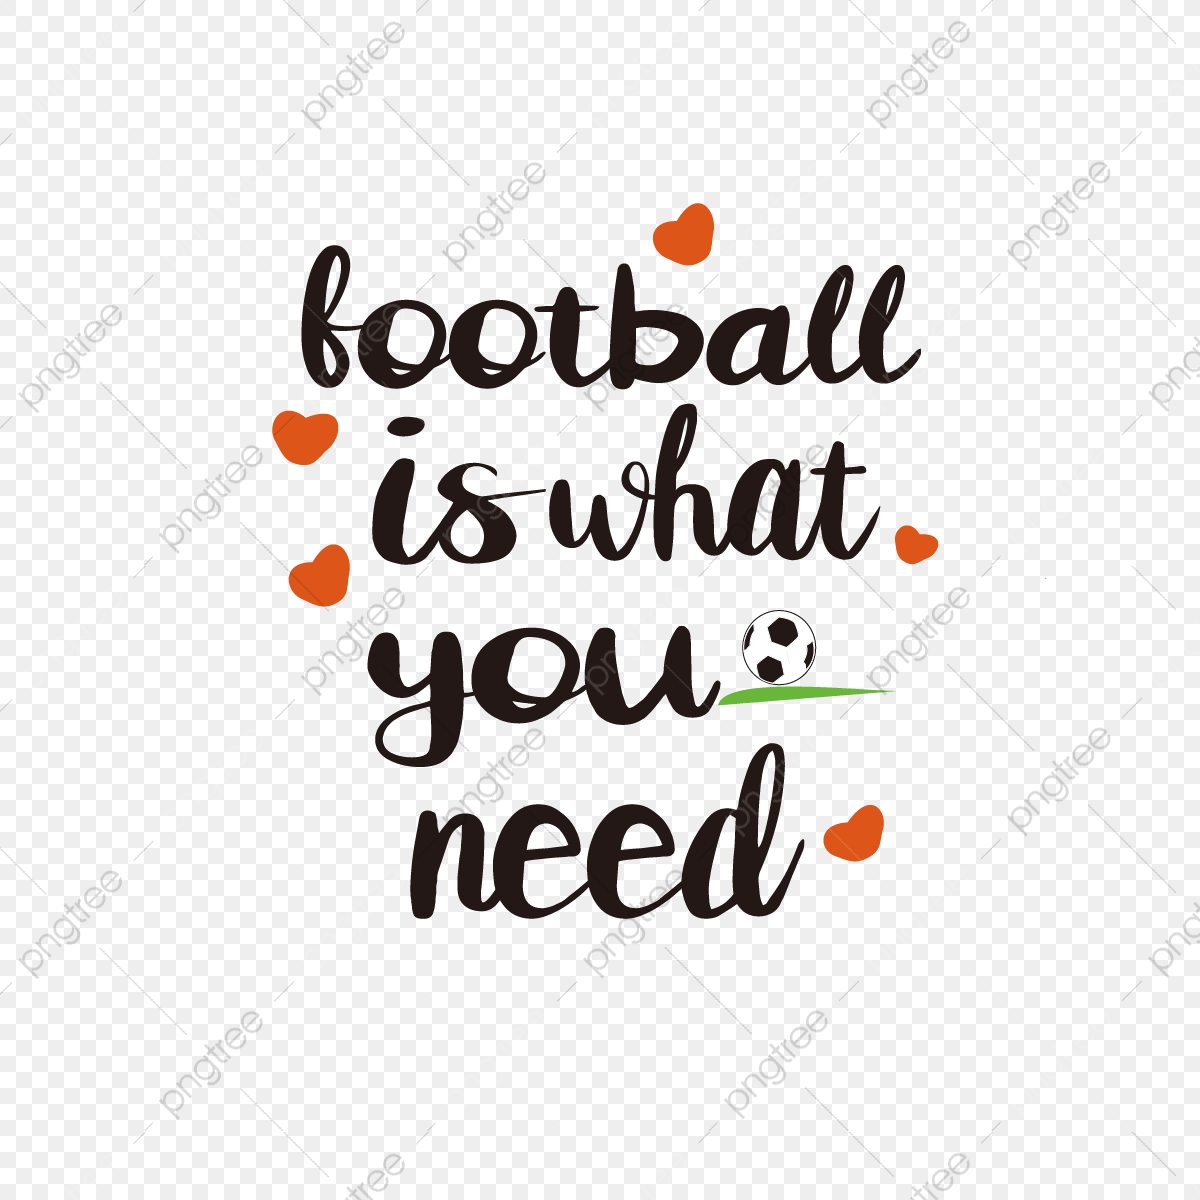 Svg Football Is The English Phrase Love You Need Font Effect Eps For Free Download